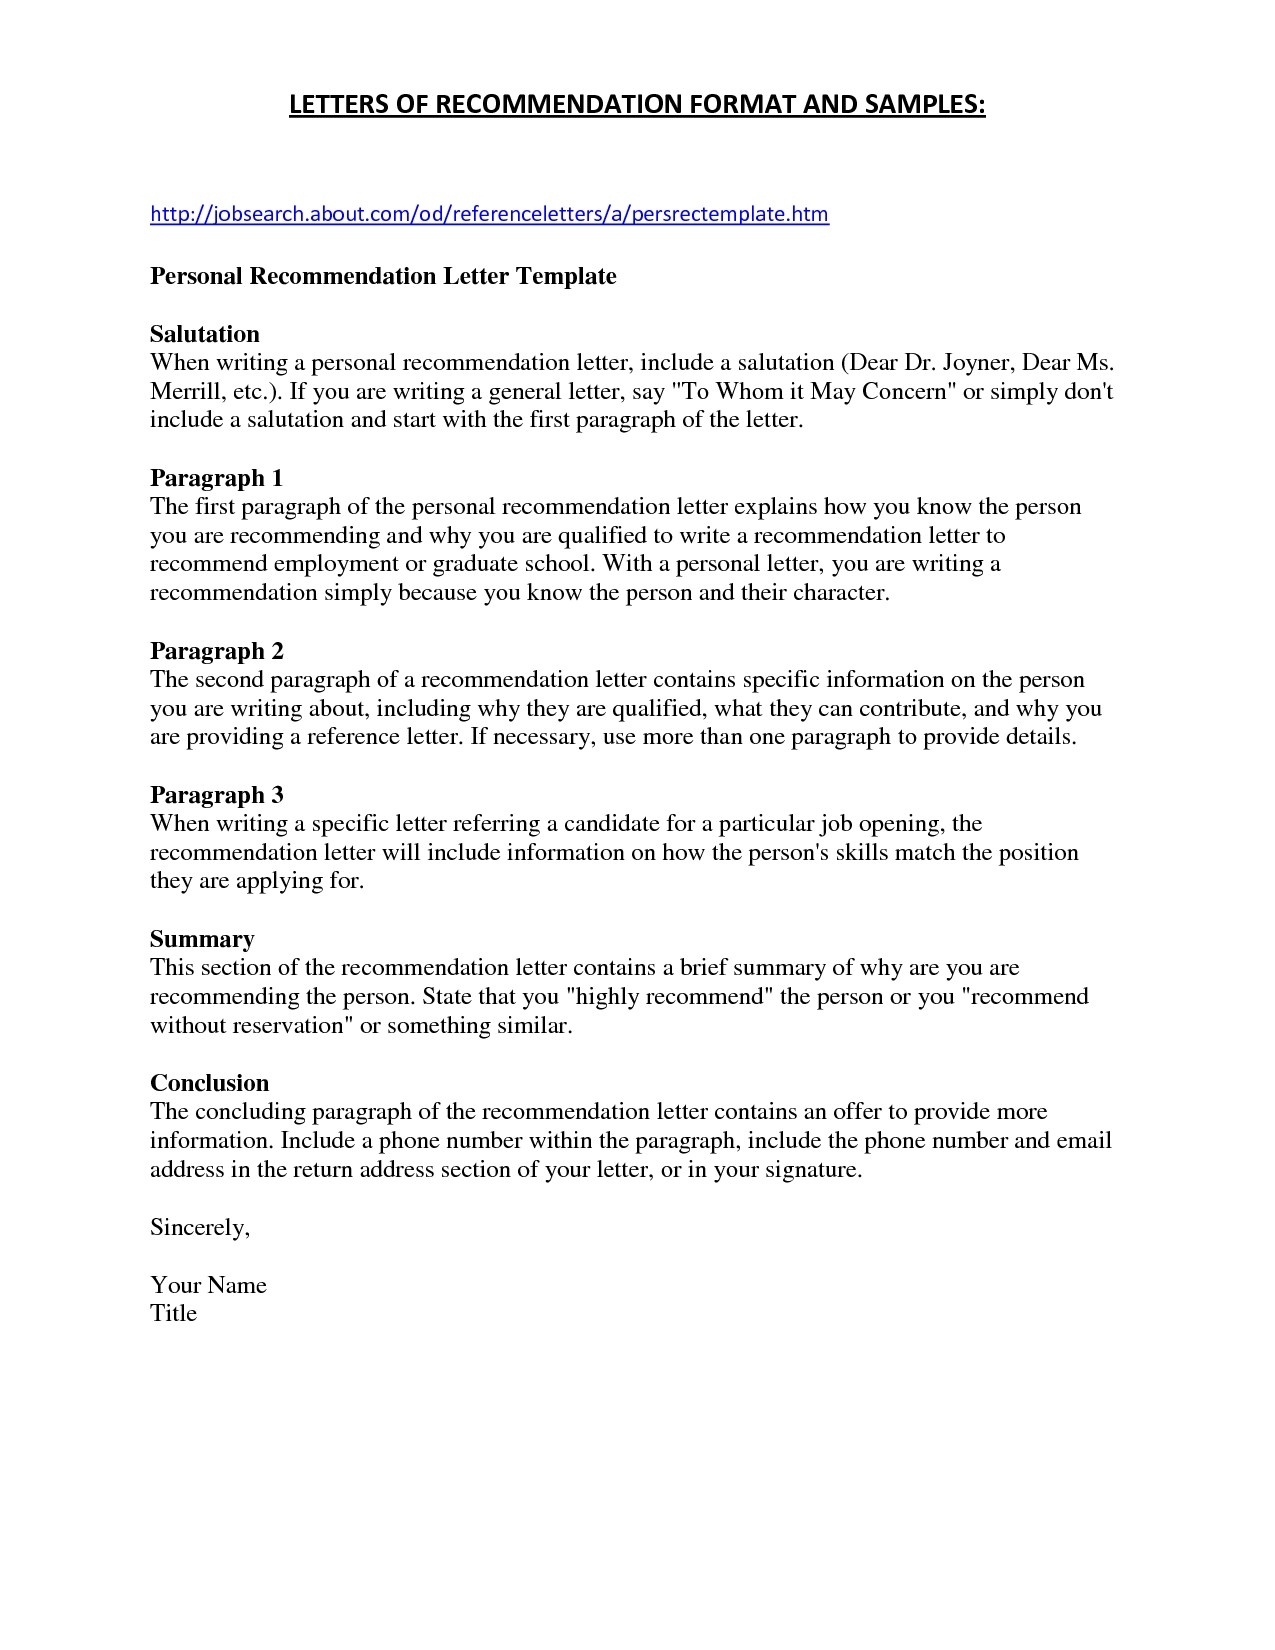 Scholarship Letter Of Recommendation Template Samples Letter Templates